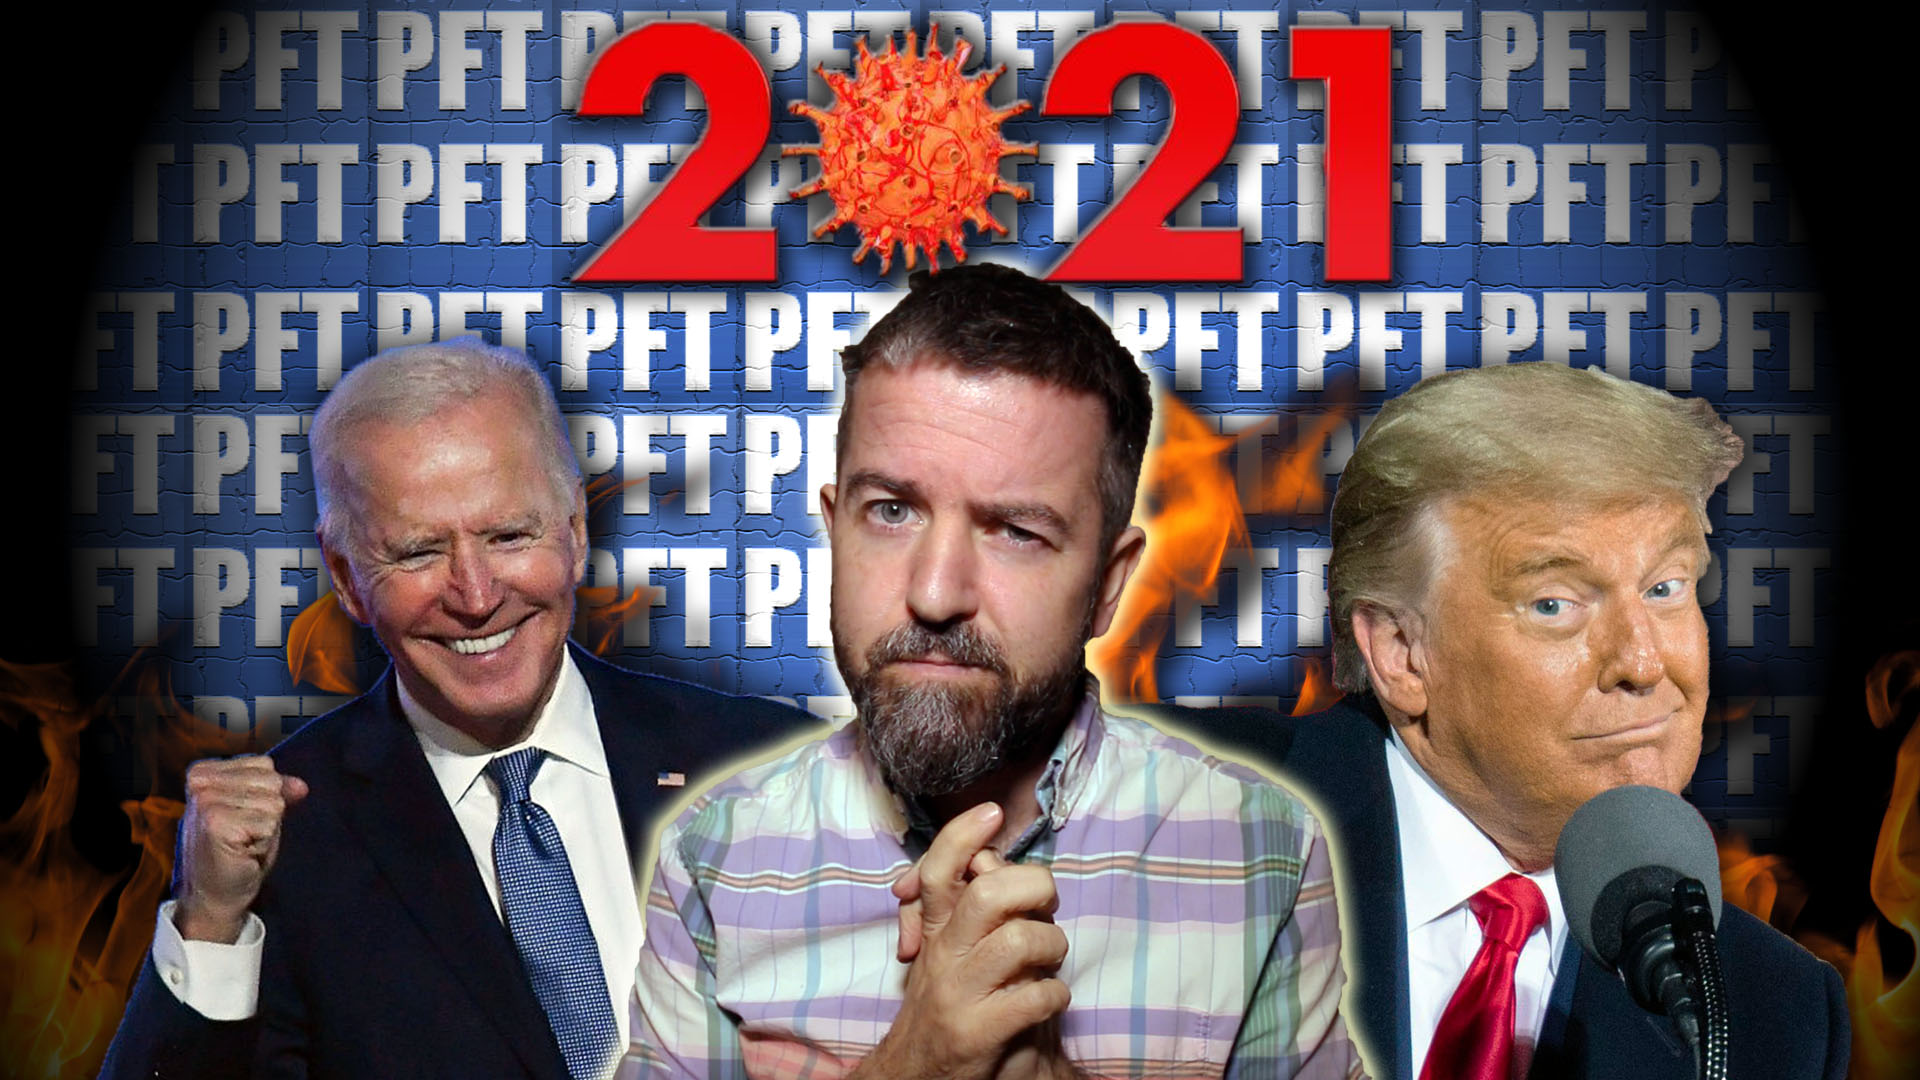 Dan Dicks: COVID-19(84) IN 2021 WITH BIDEN? OR, COVID-19(84) IN 2021 WITH TRUMP? Here's What To Expect!!!